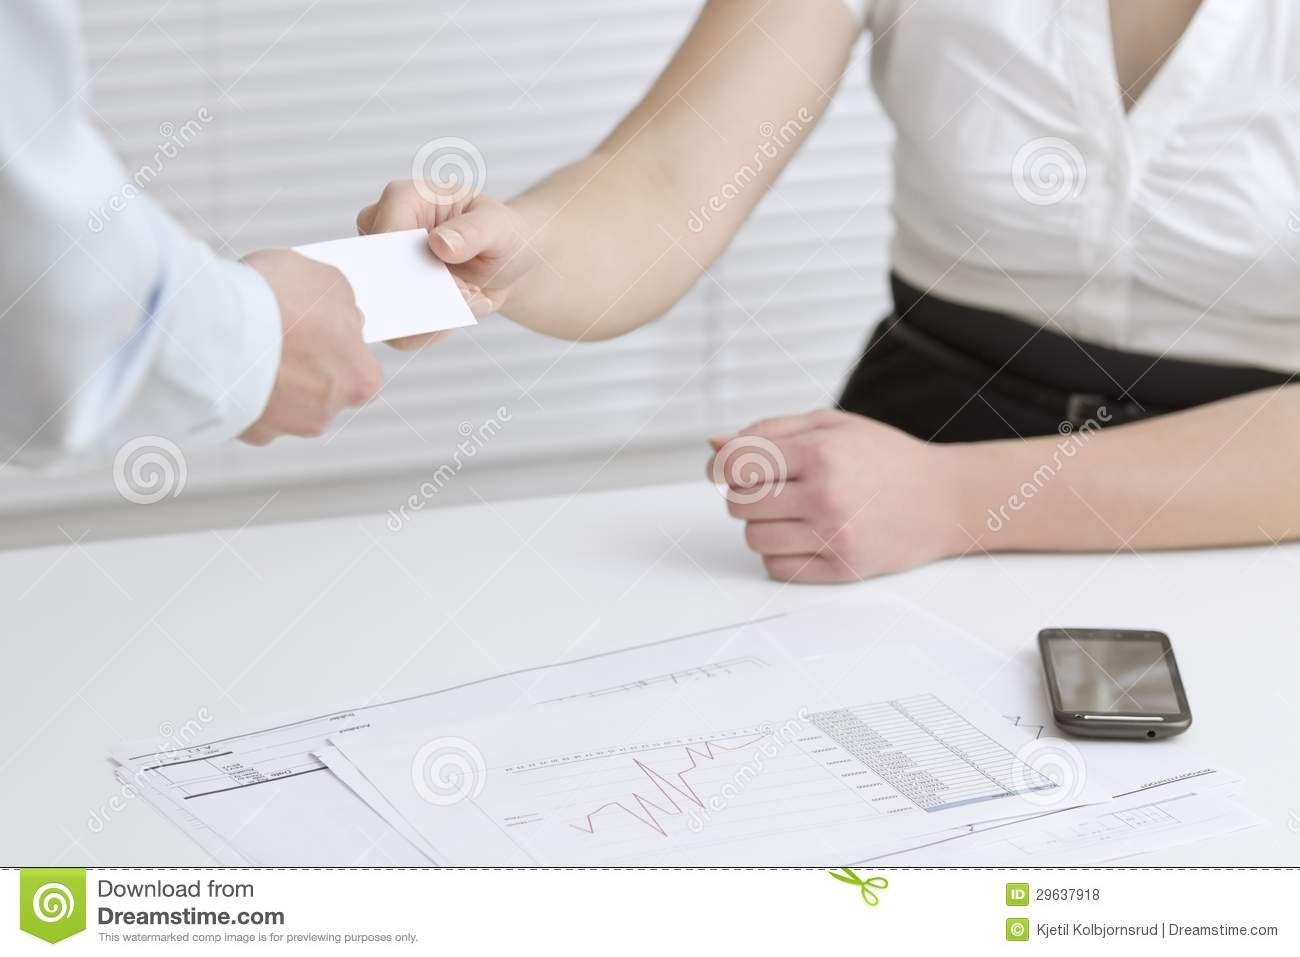 Exchange Business Cards stock photo. Image of people - 29637918